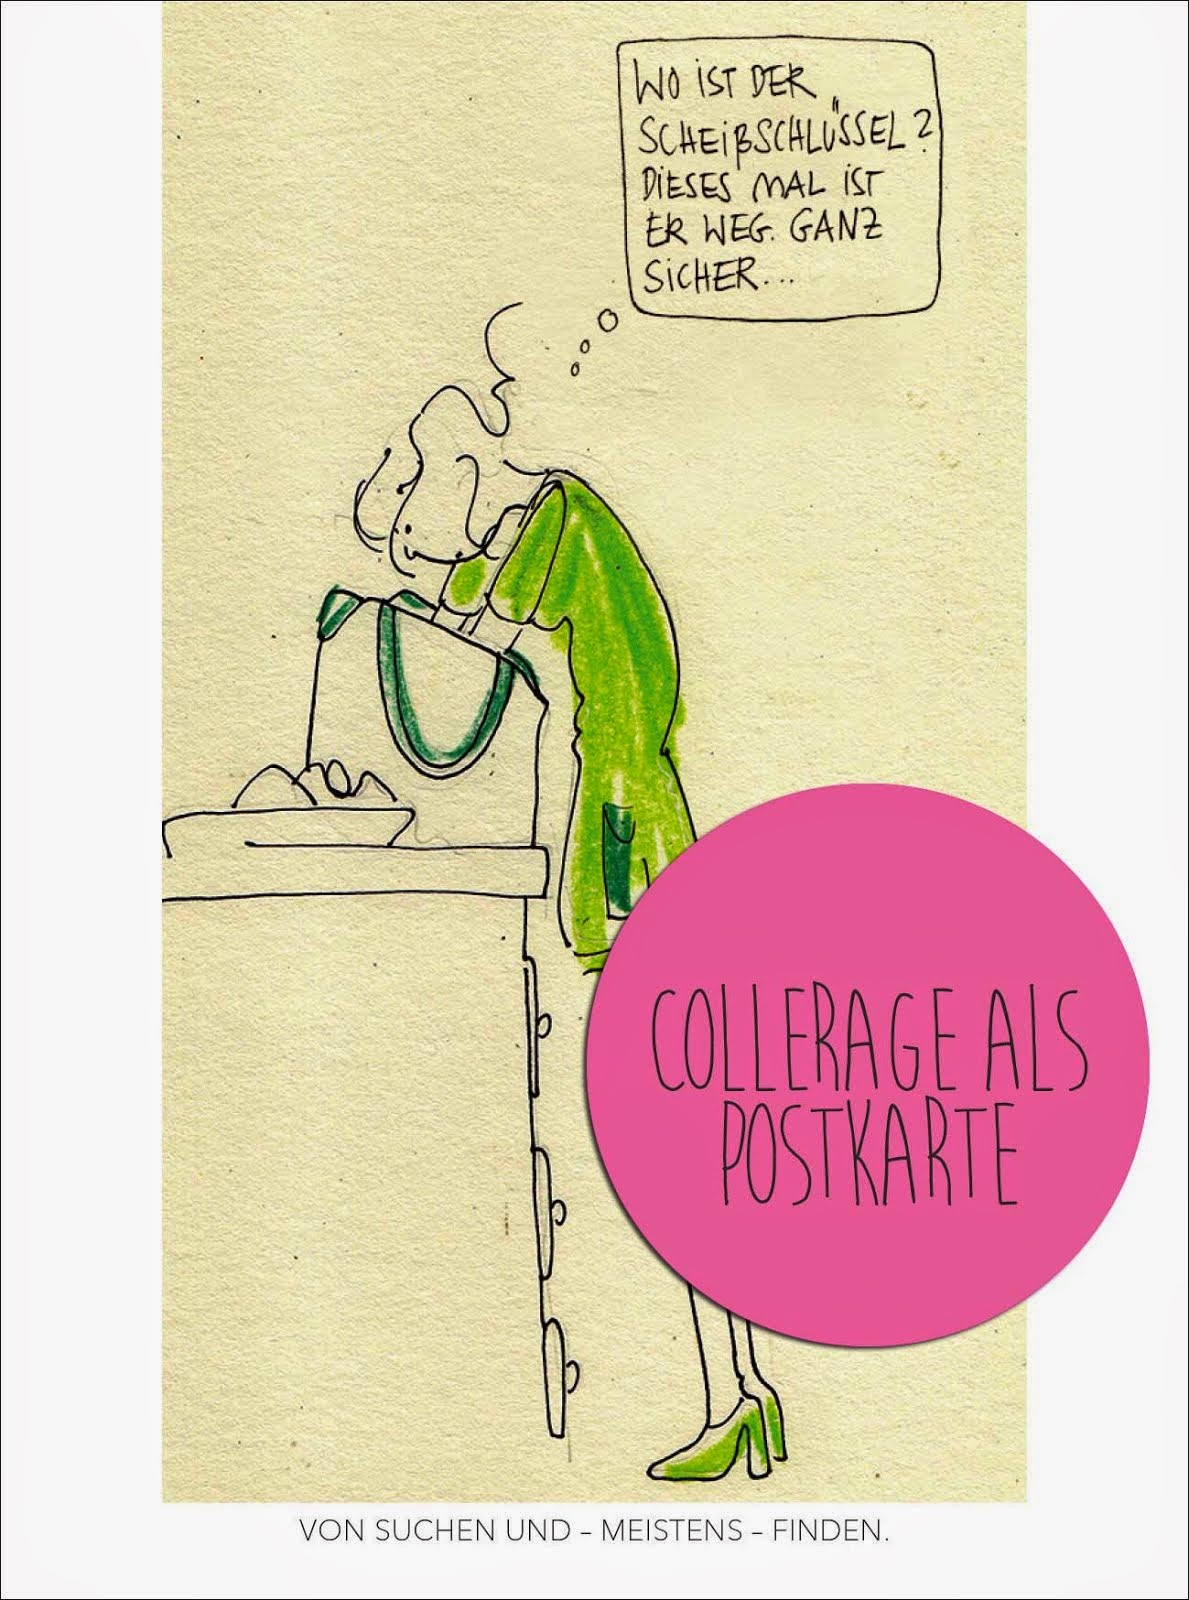 Collerage als Postkarte